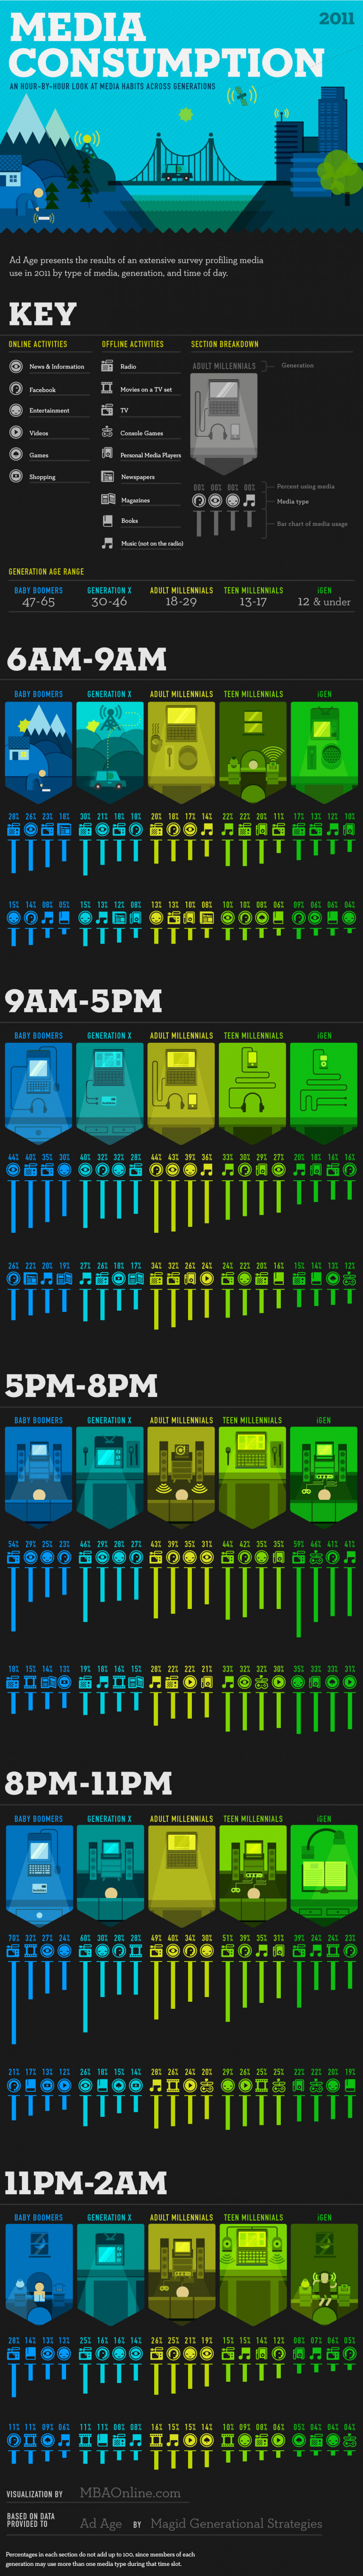 Who's Using What Media and When? Infographic